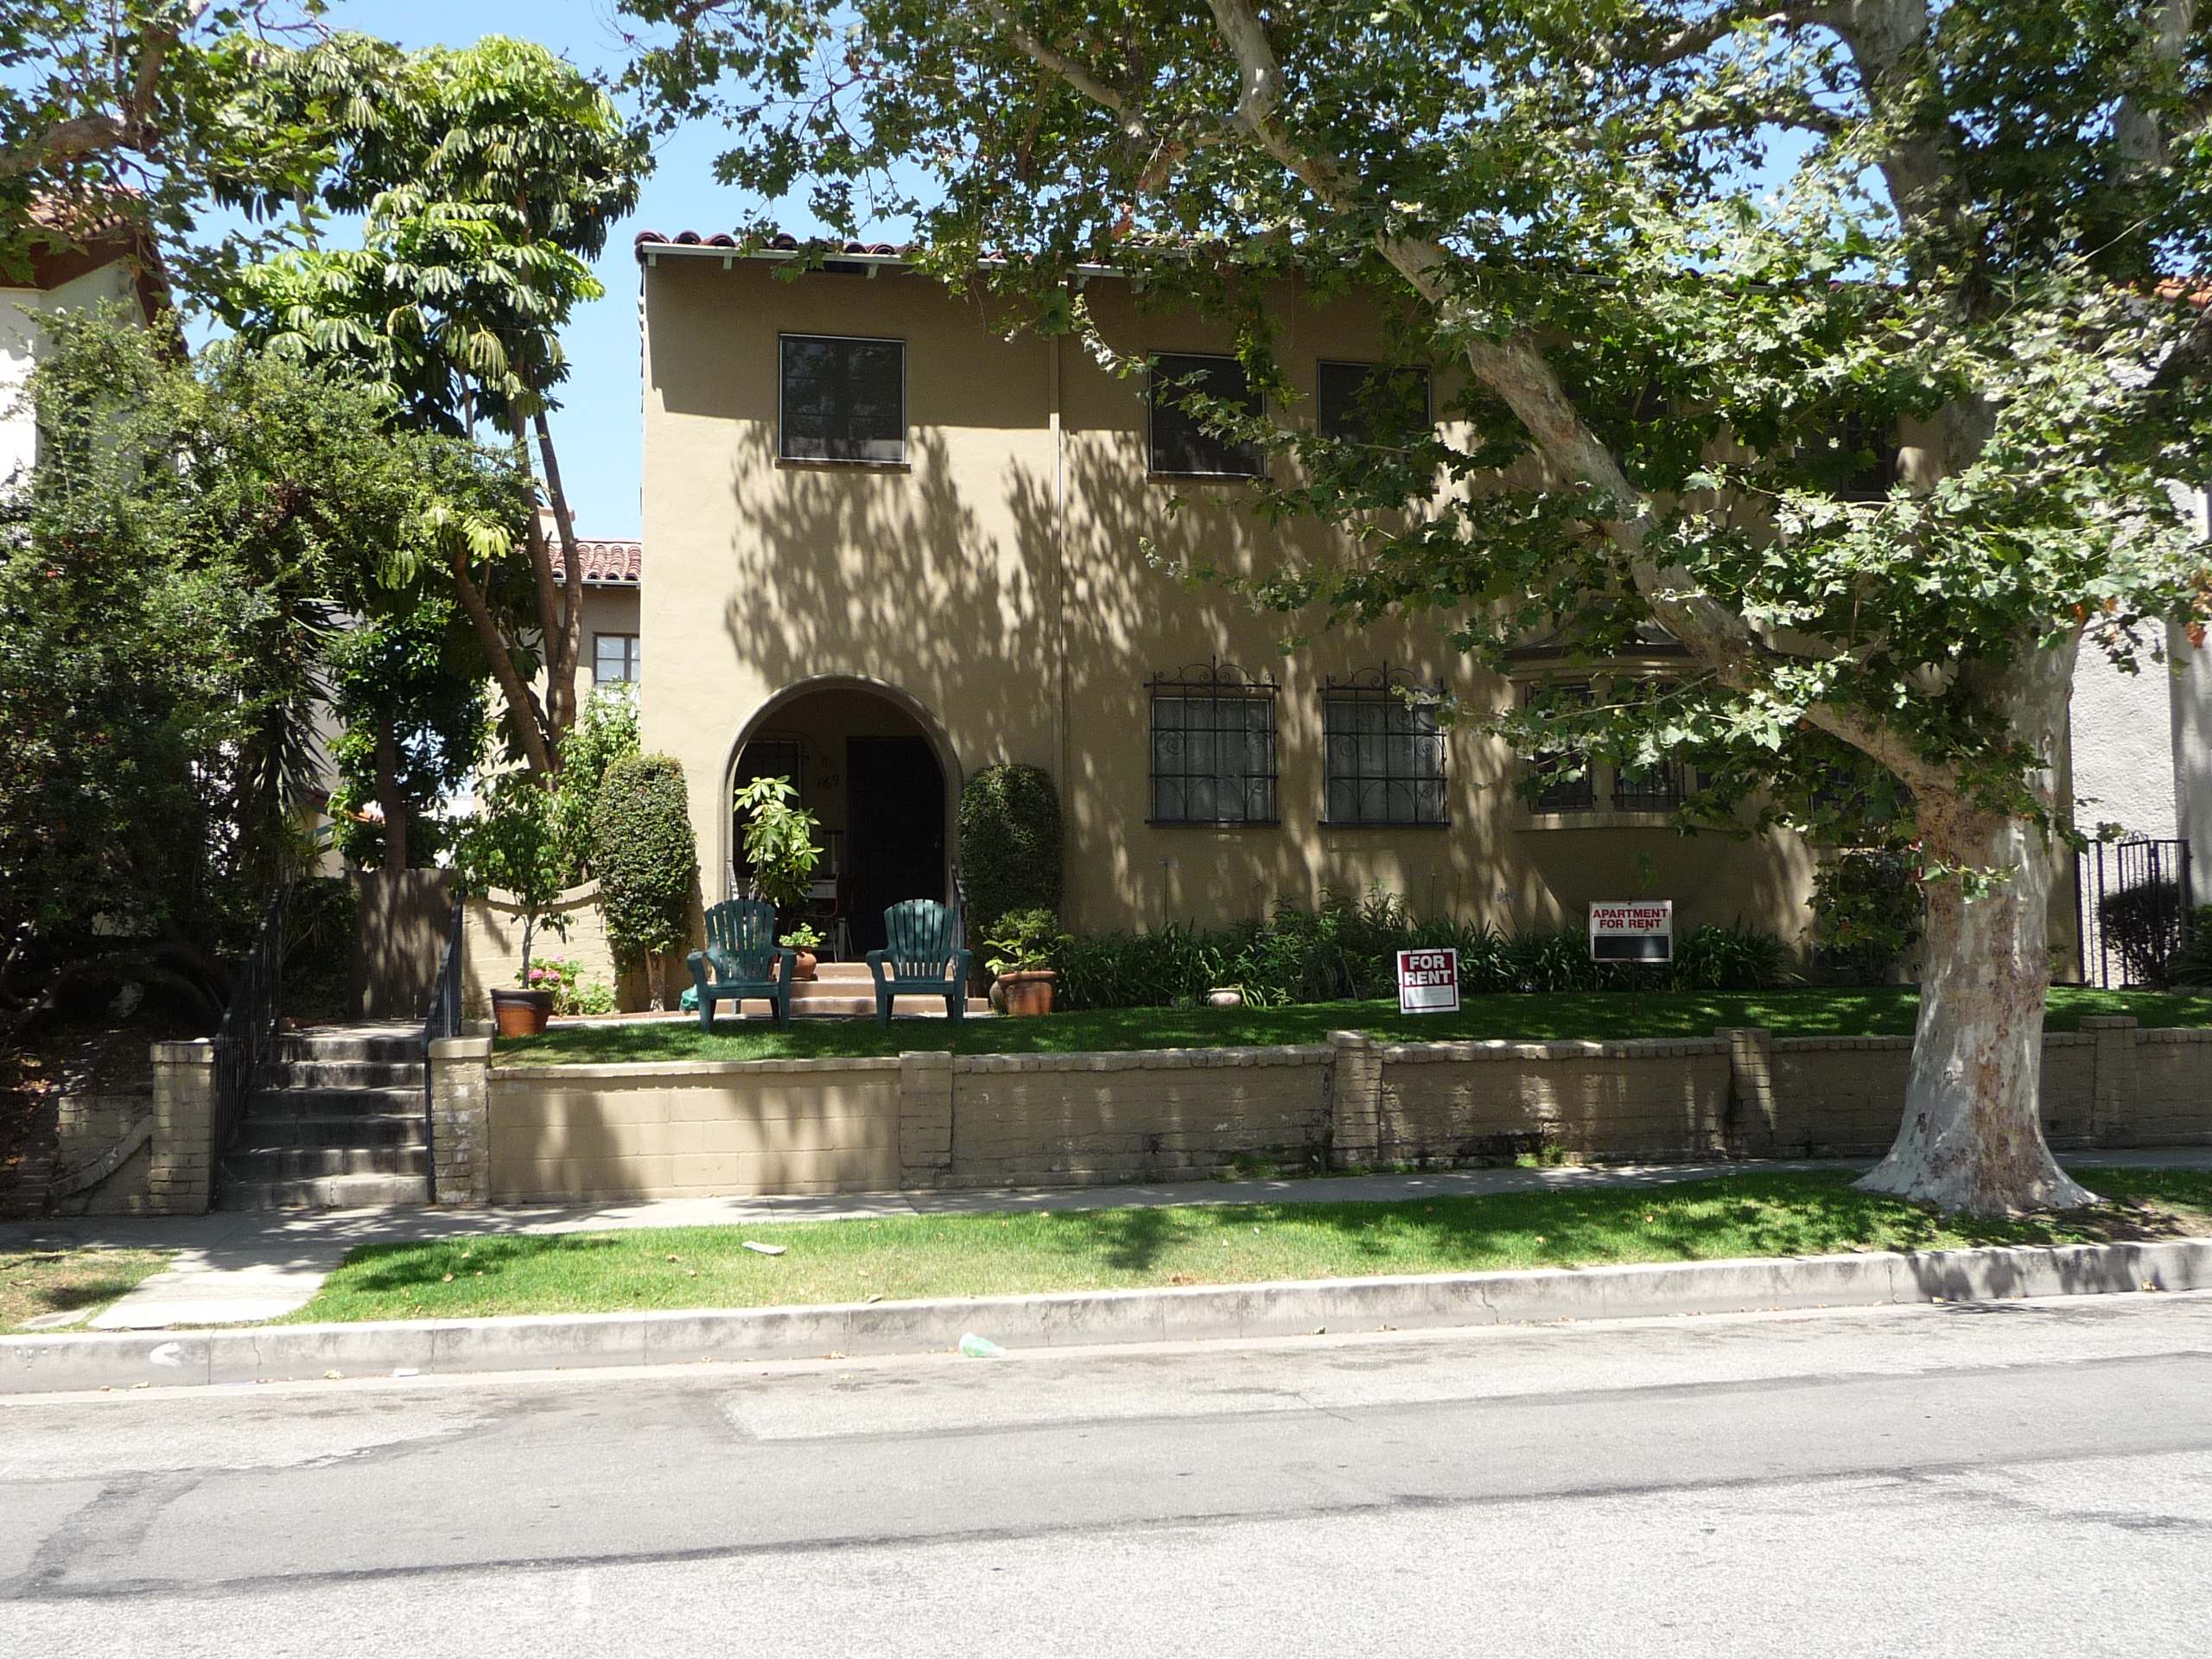 173 N SYCAMORE AVE - PHOTO